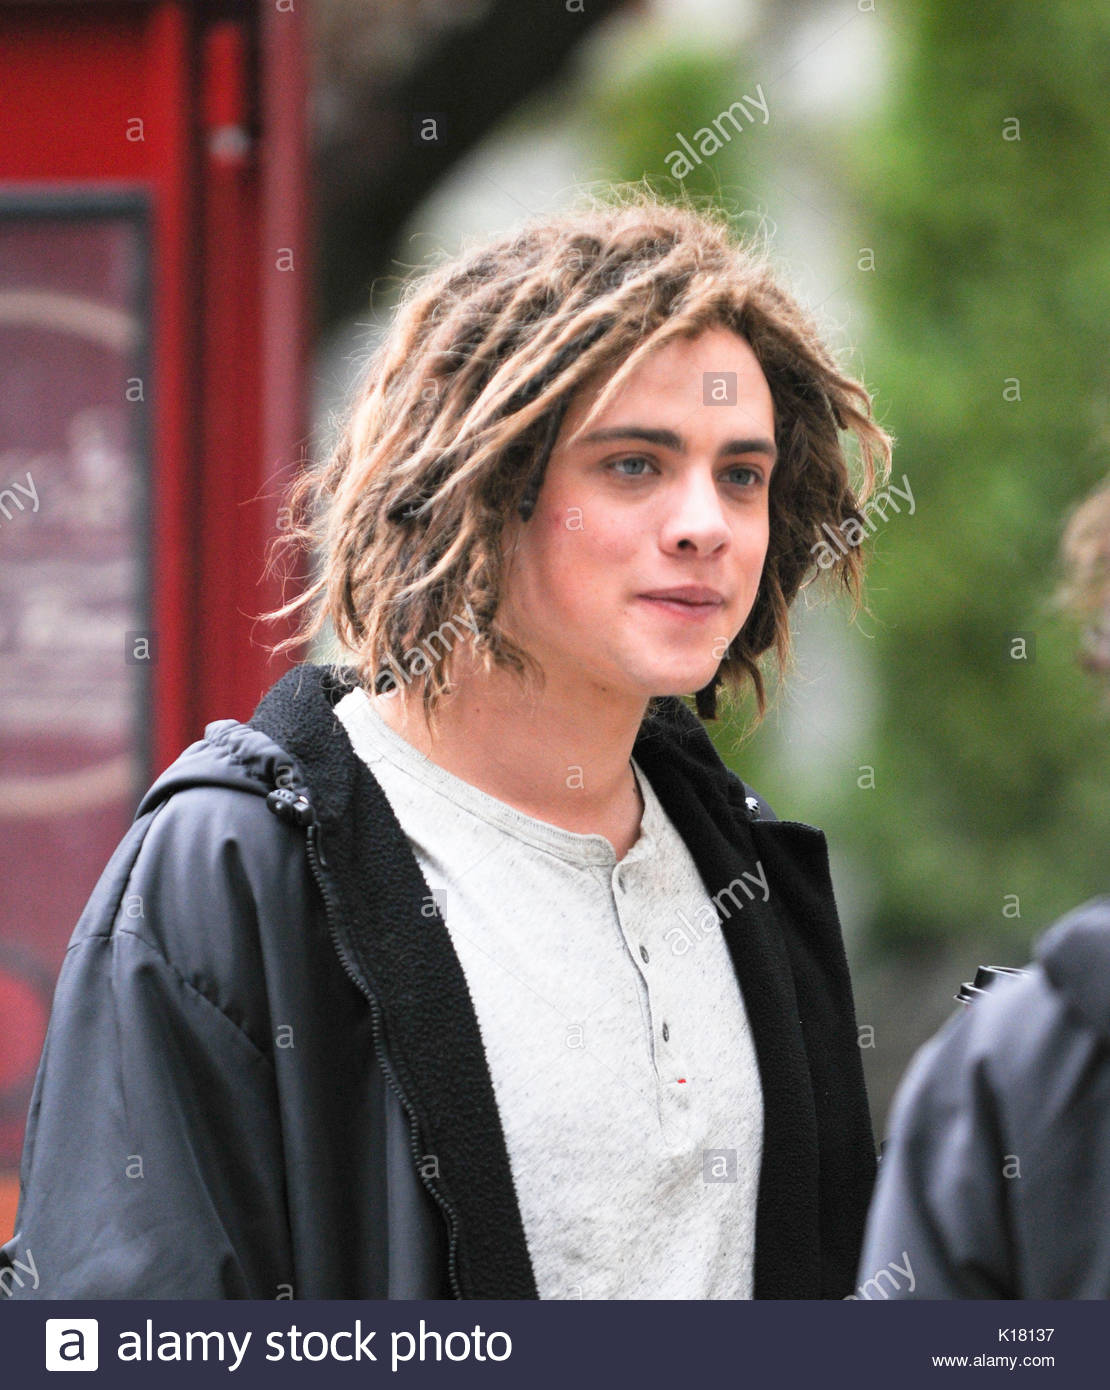 Douglas smith douglas smith meets and greets some fans while douglas smith meets and greets some fans while working on the set of percy jackson sea of monsters in vancouver douglas plays tyson half brother to m4hsunfo